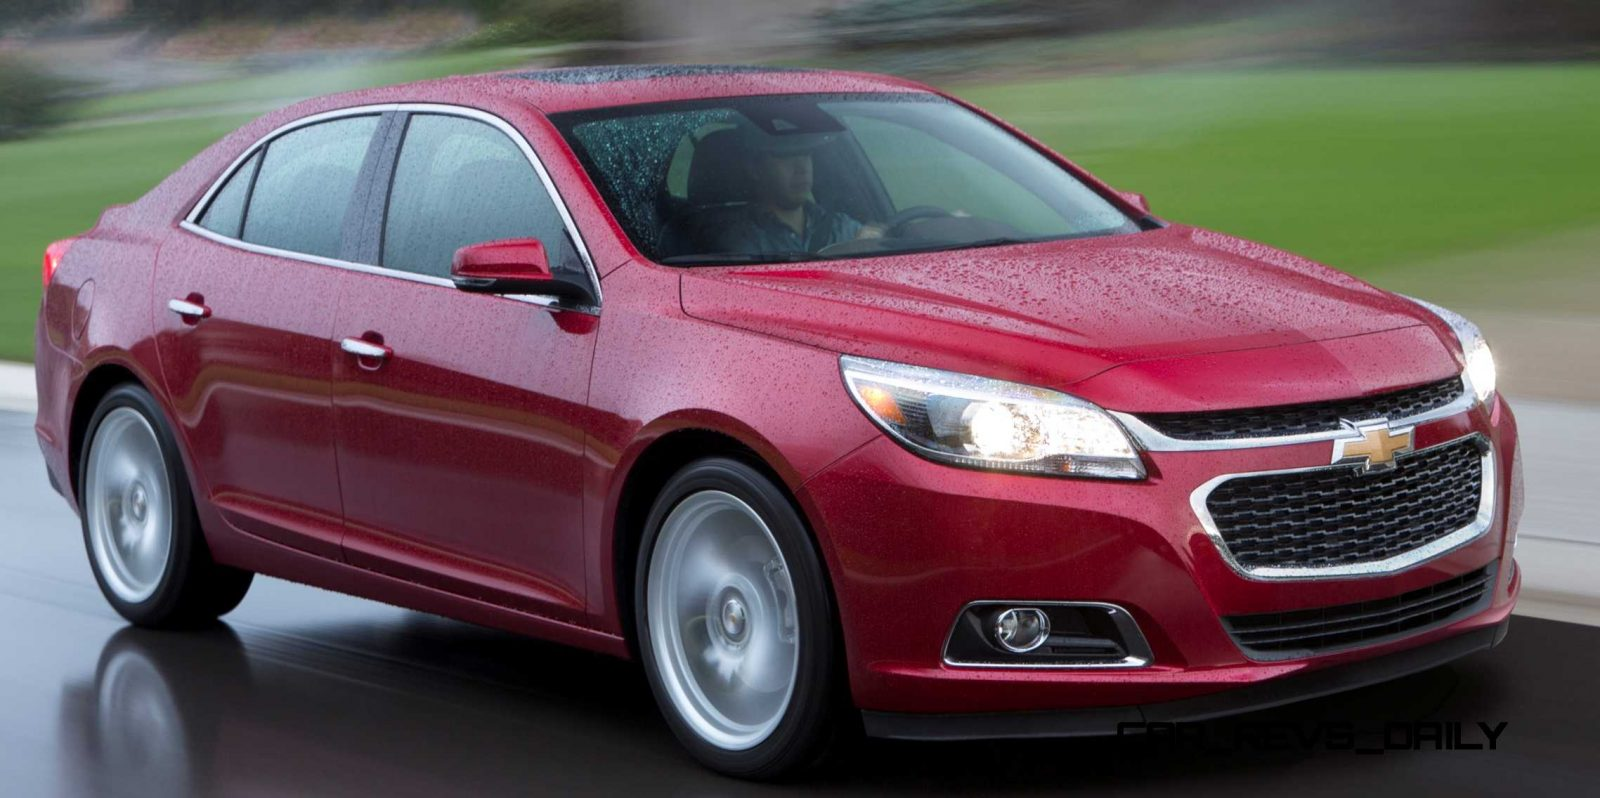 first drive videos 2014 chevrolet malibu turbo to 60 mph. Black Bedroom Furniture Sets. Home Design Ideas